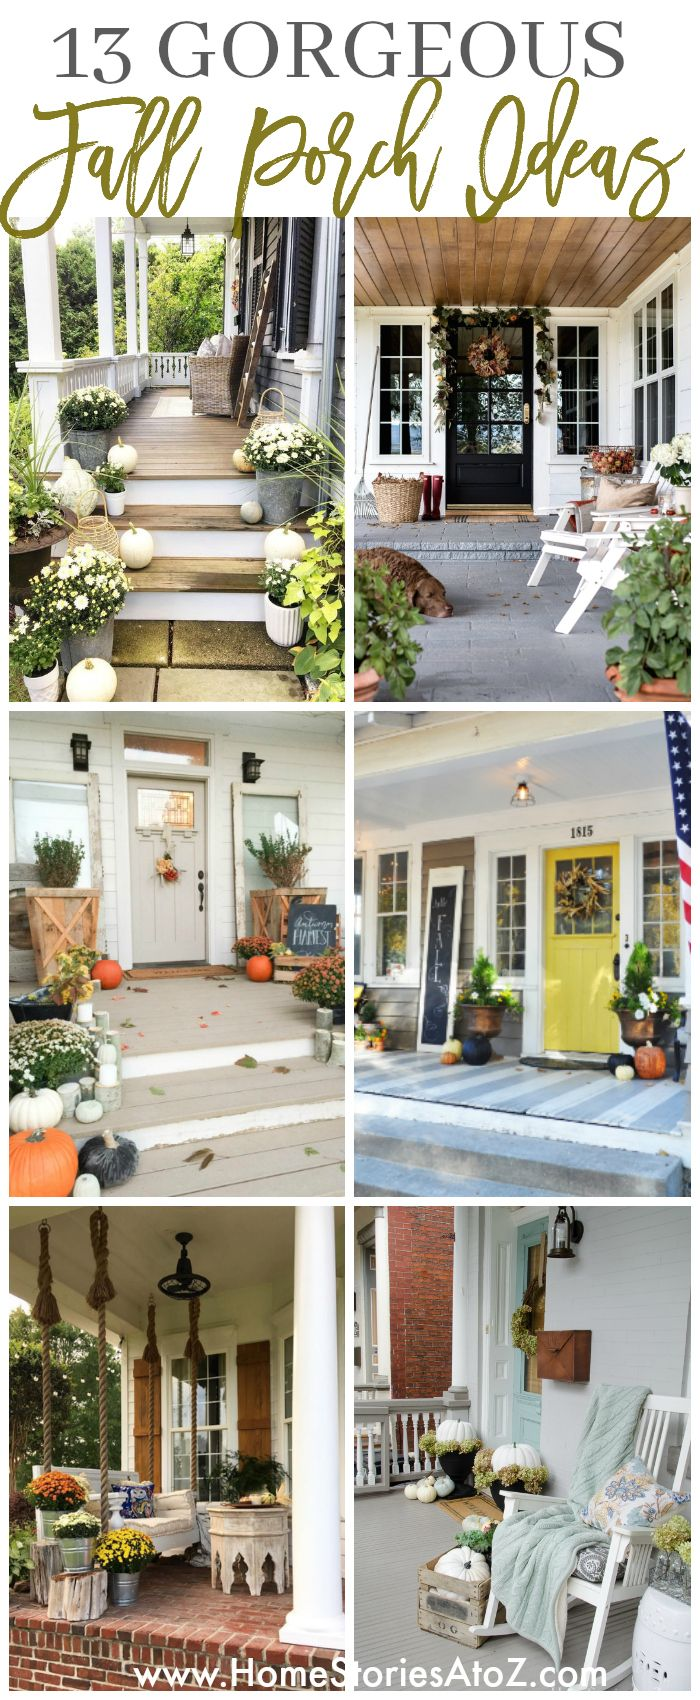 13 Gorgeous Fall Porch Ideas 255 best